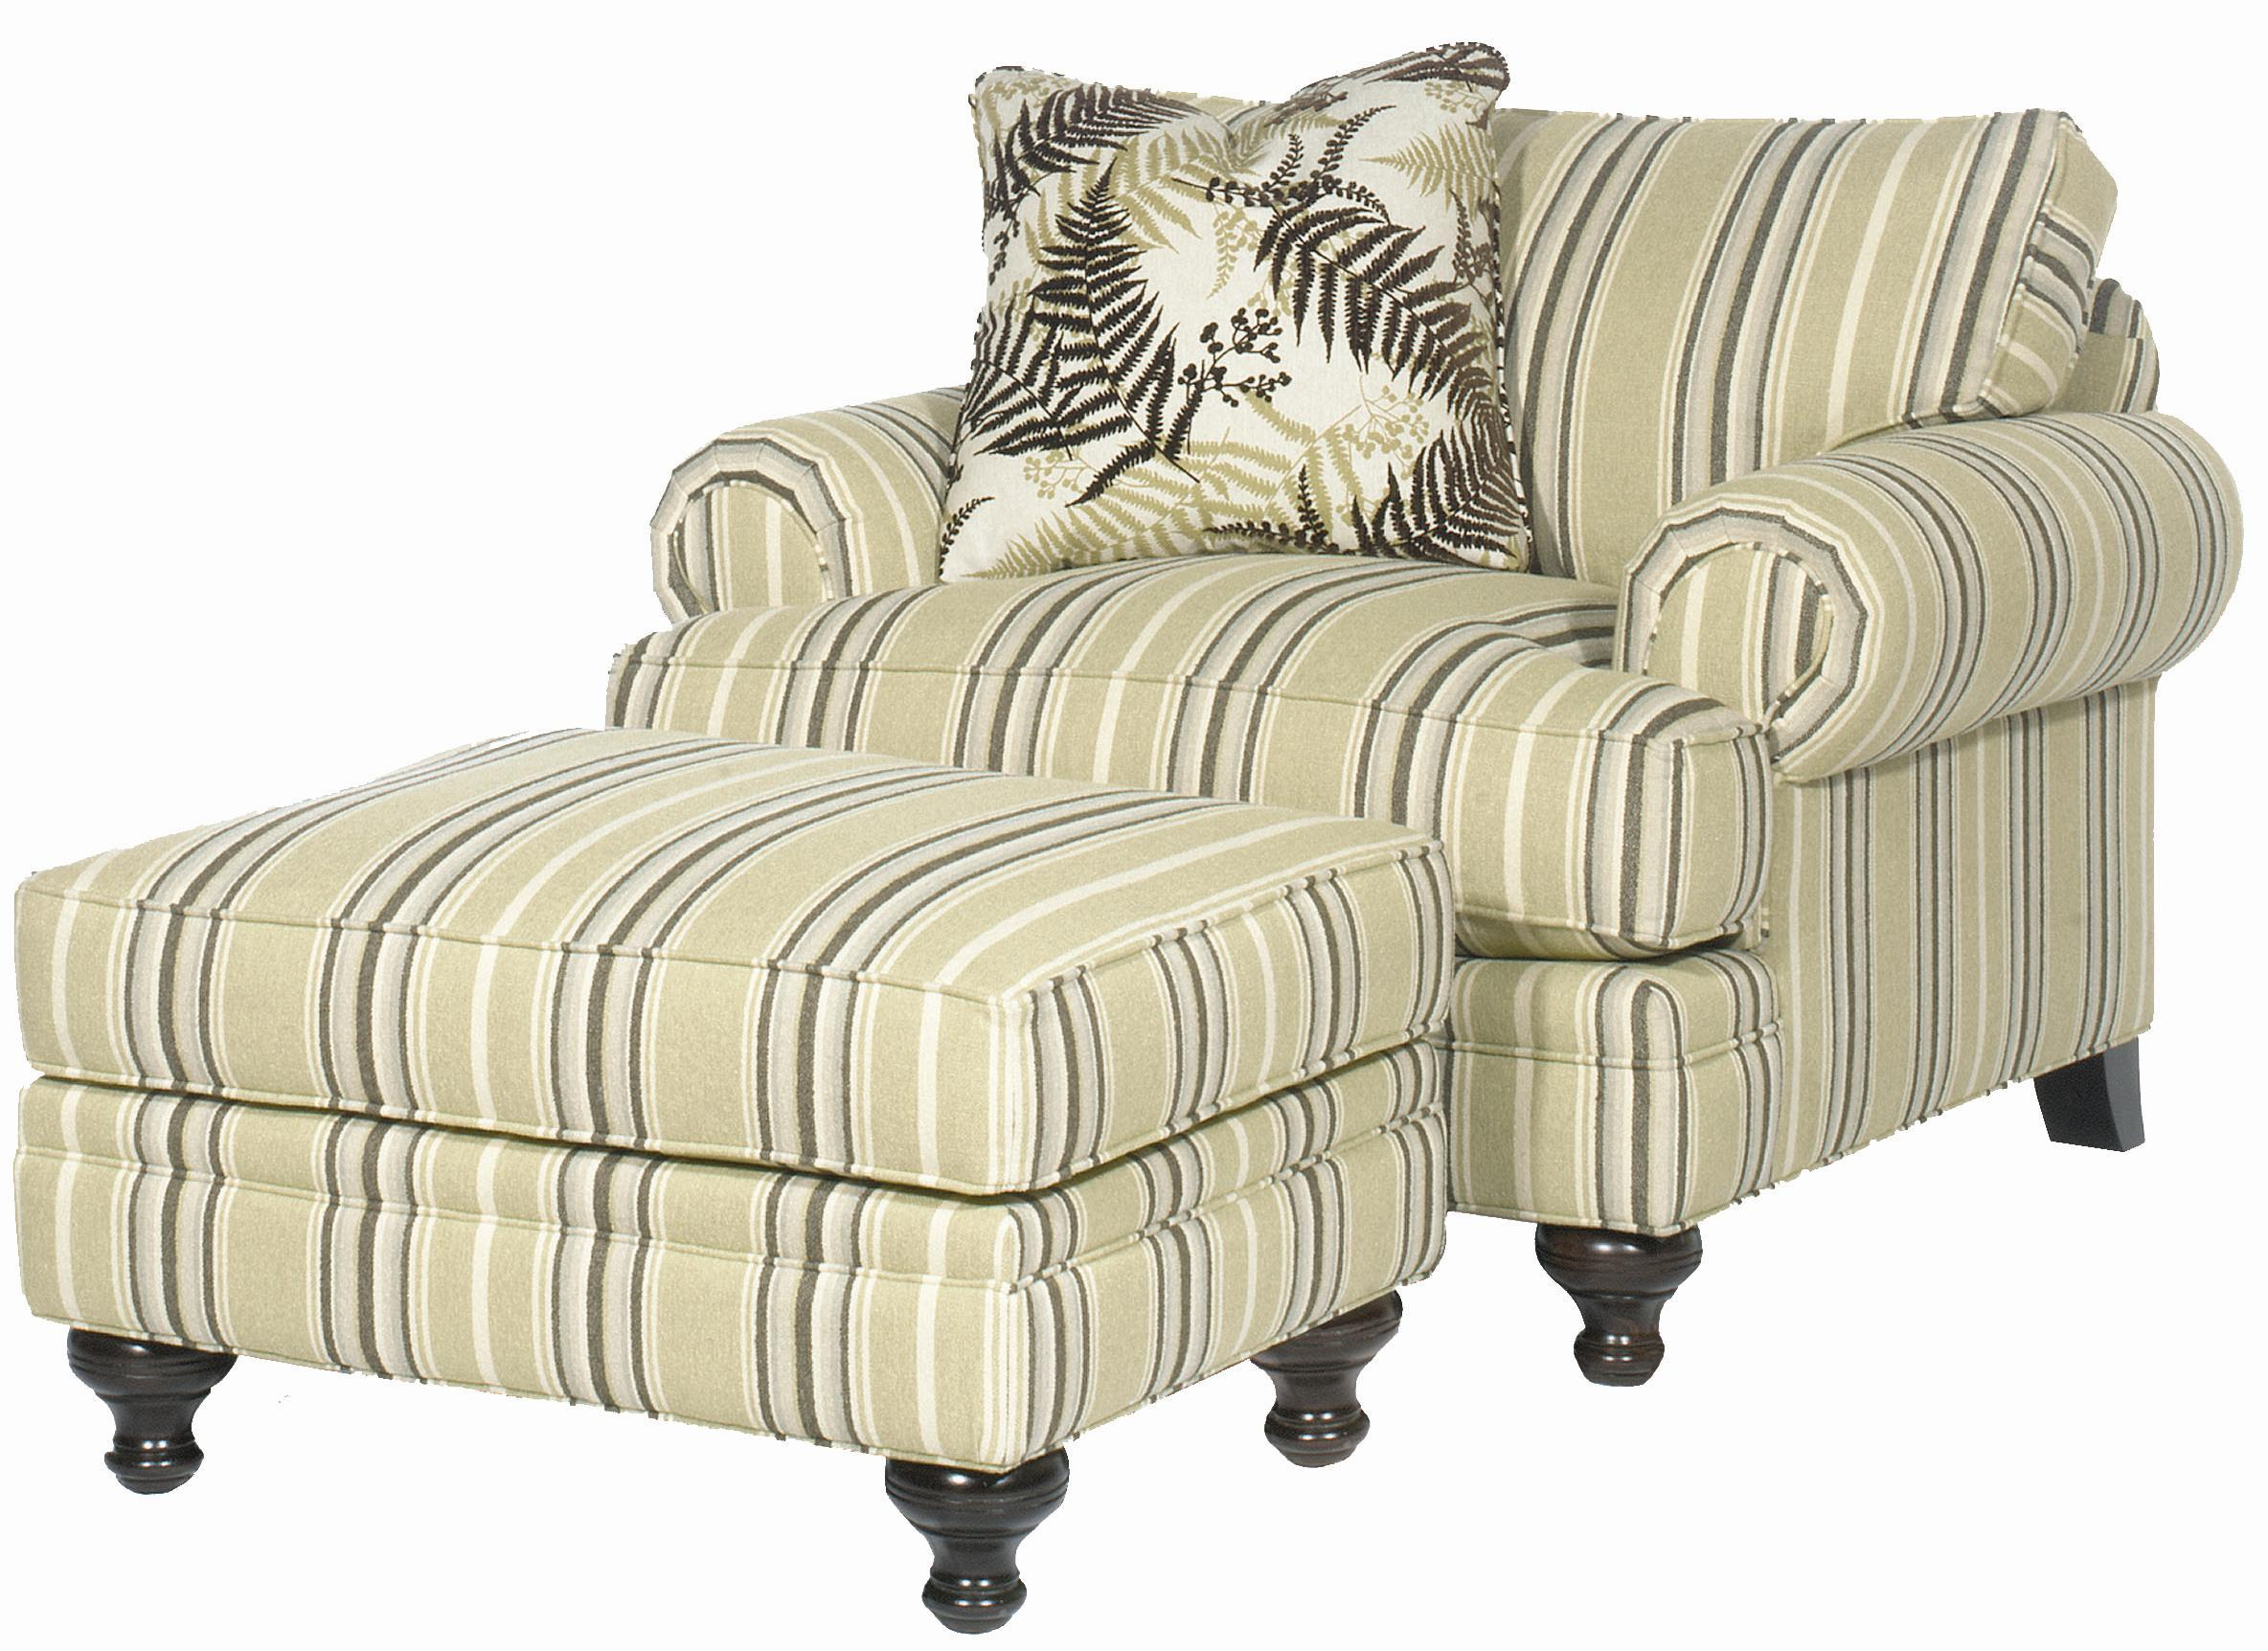 P709900 Chair & Ottoman Set by Paula Deen by Craftmaster at Home Collections Furniture